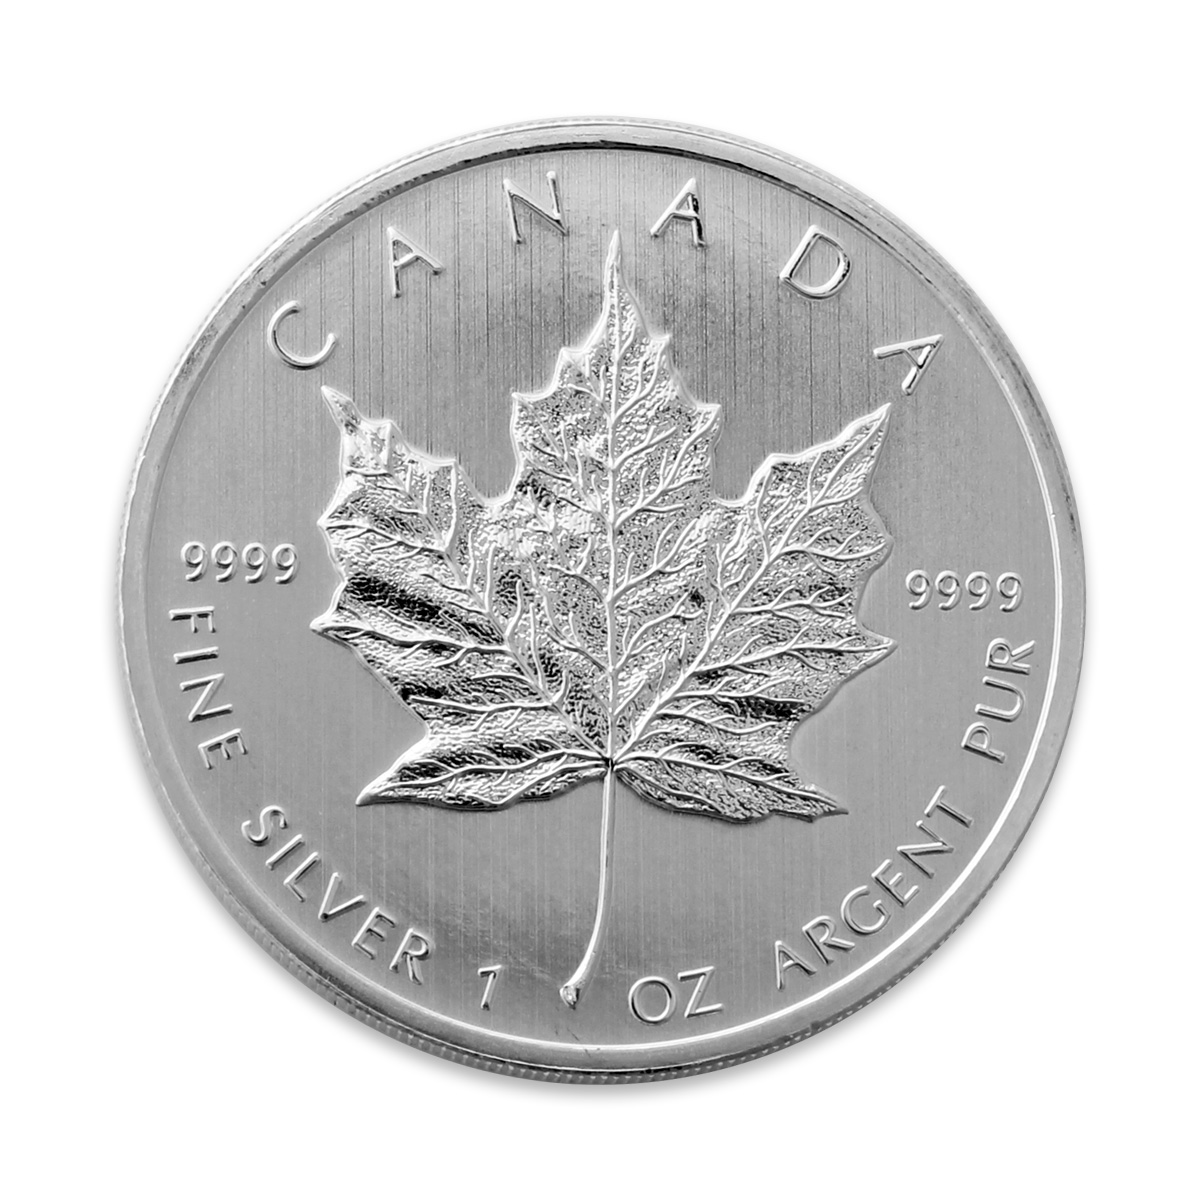 1 Oz Canadian Maple Leaf Silver